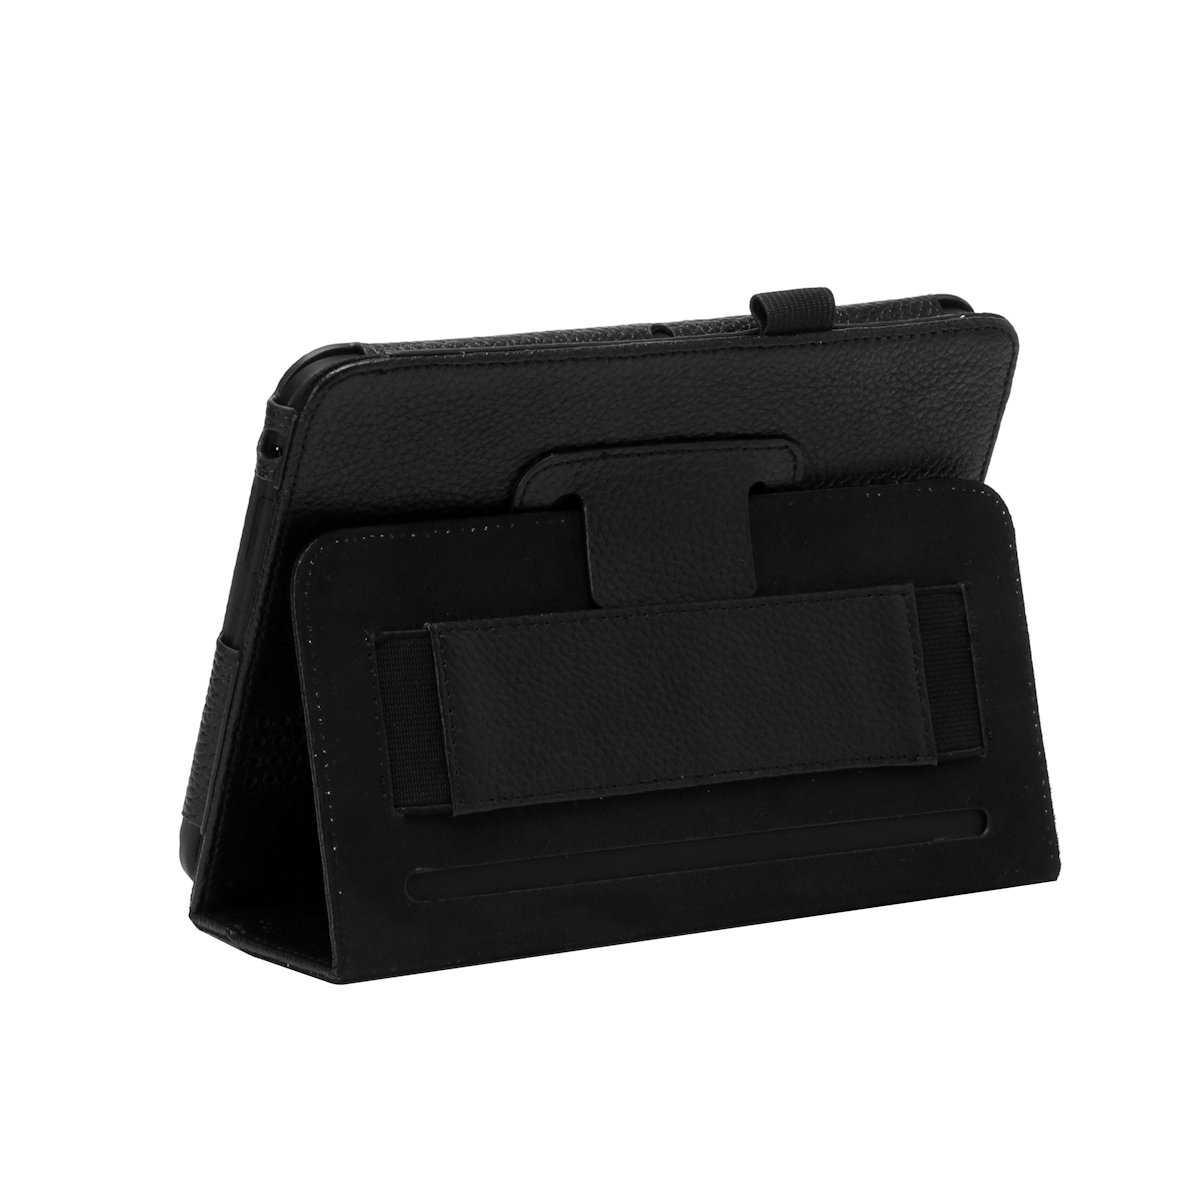 Kindle Fire HD 7 - Genuine Leather Case